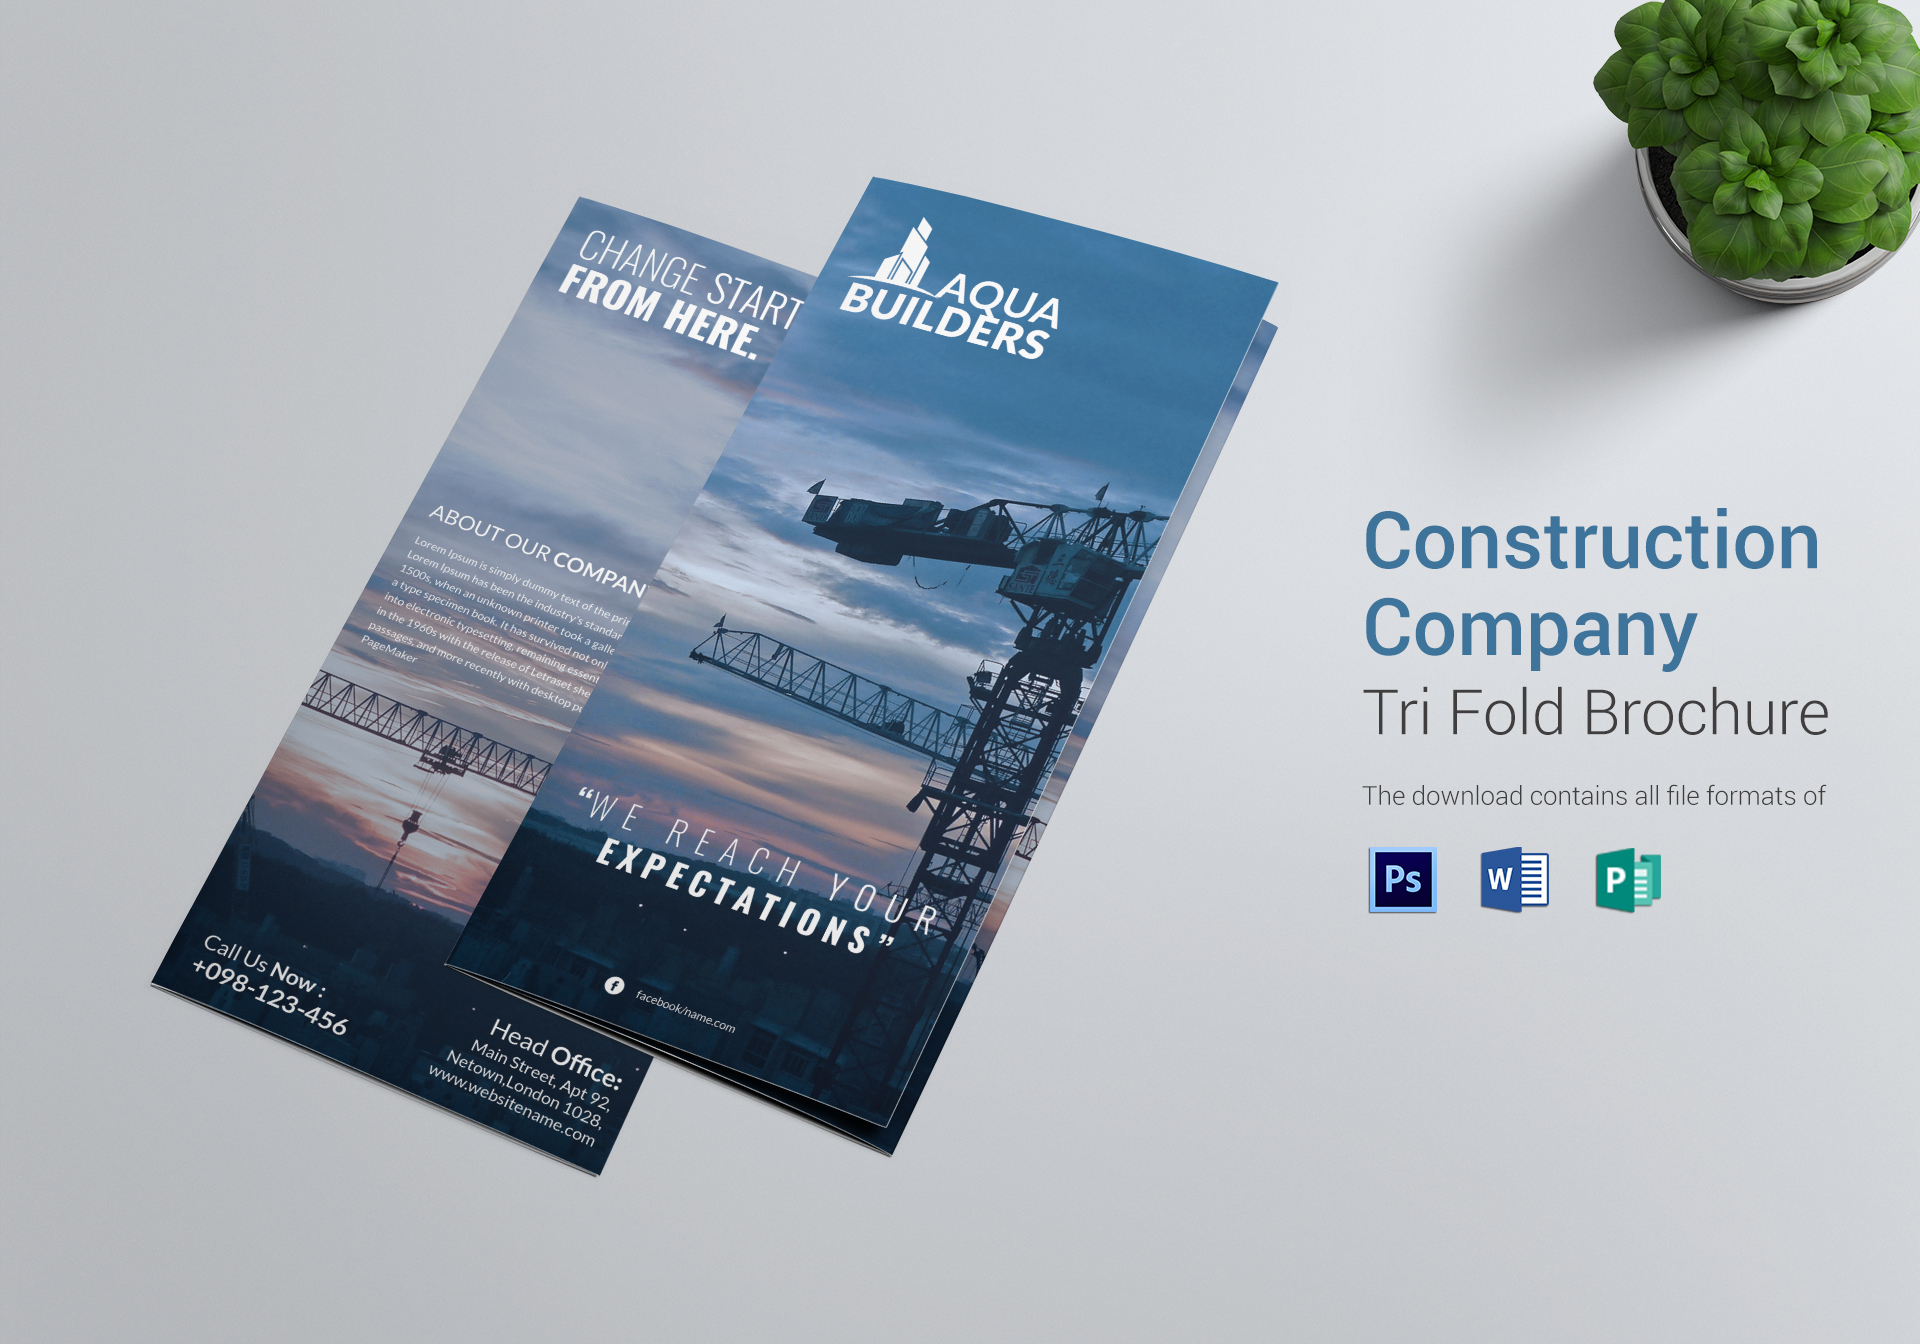 templates for tri fold brochures - construction company tri fold brochure design template in